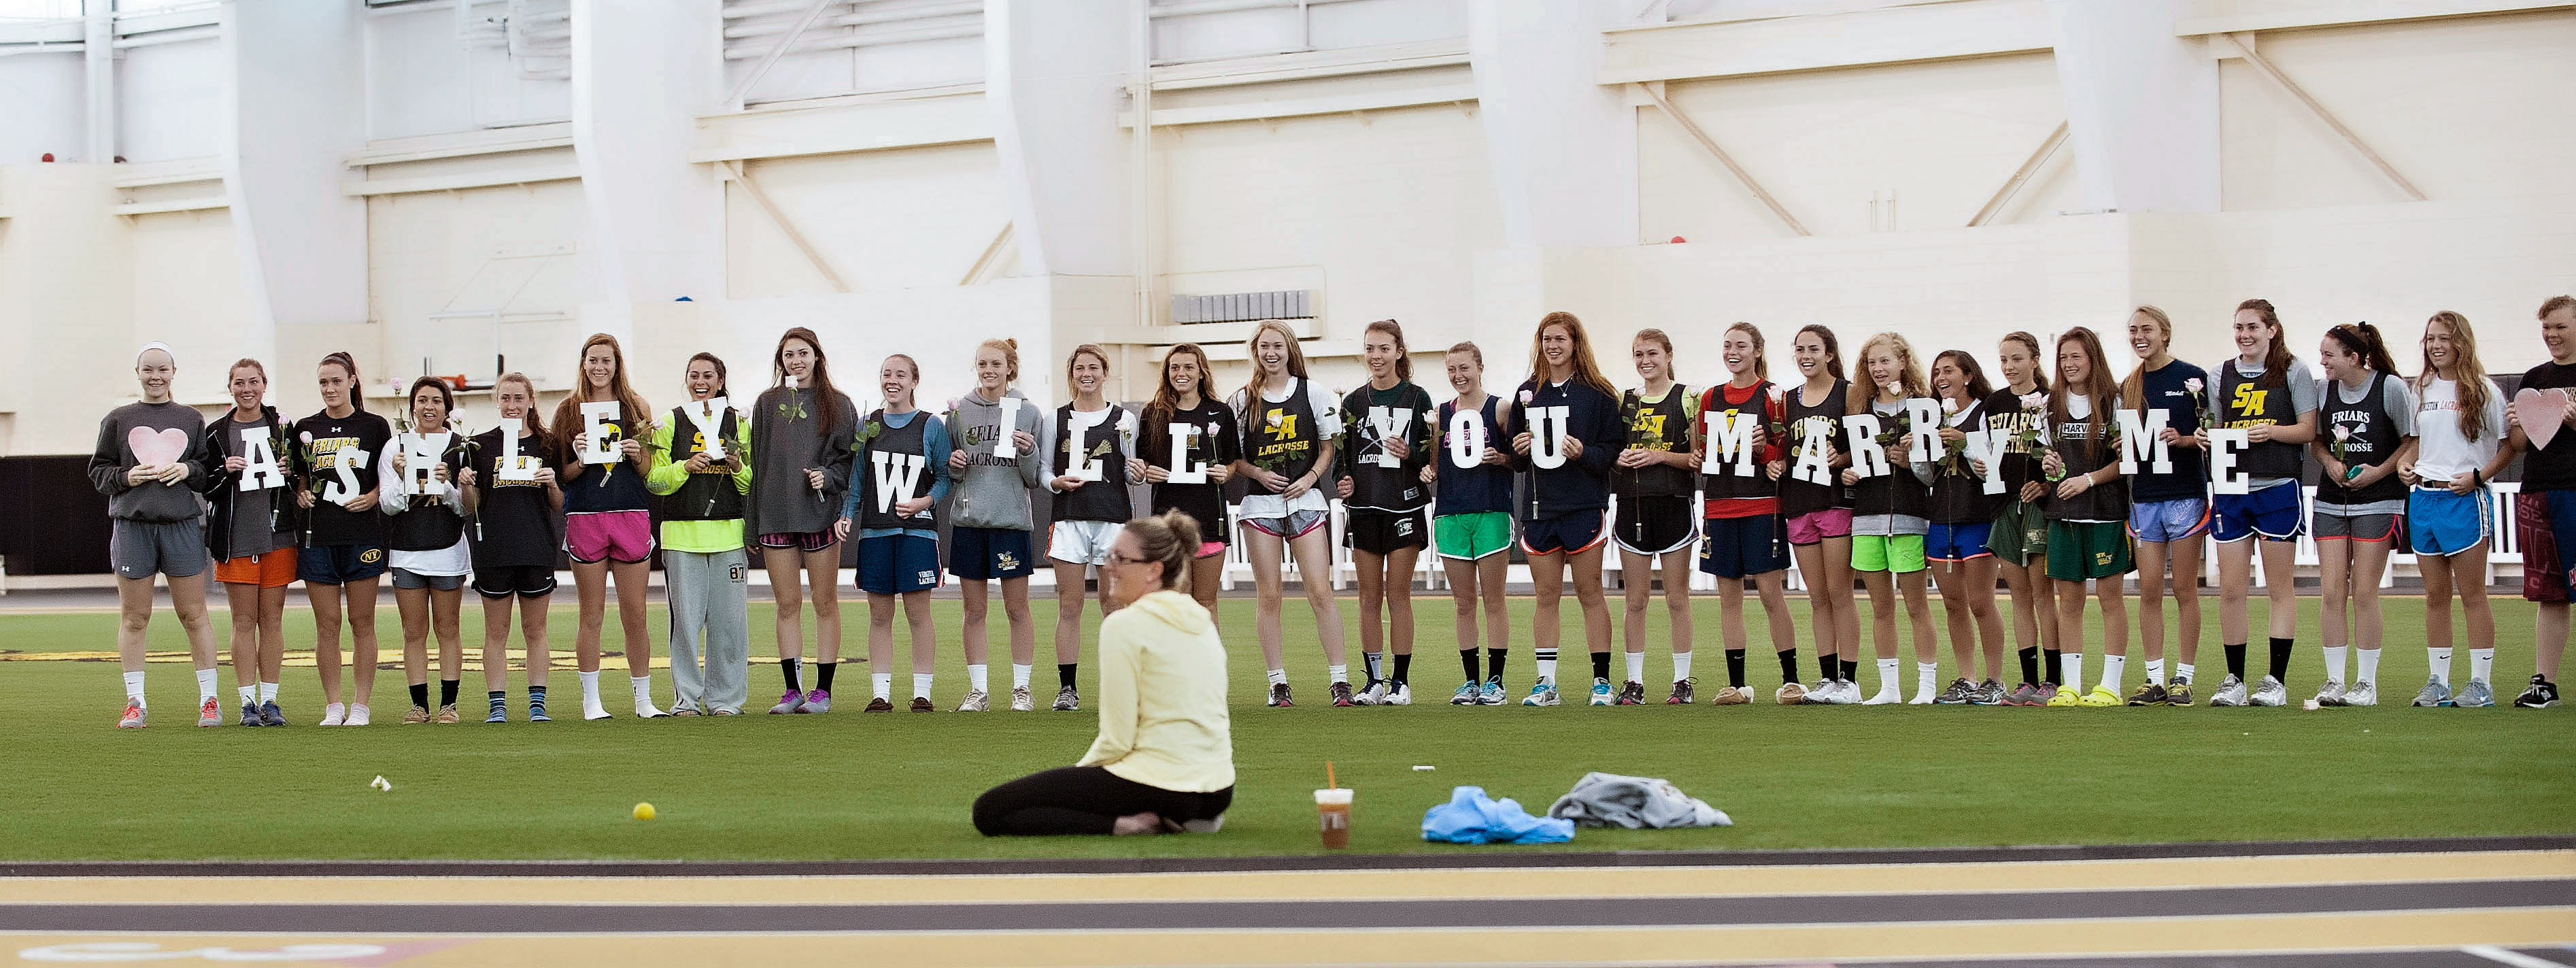 Image 3 of Marriage Proposal at Lacrosse Practice